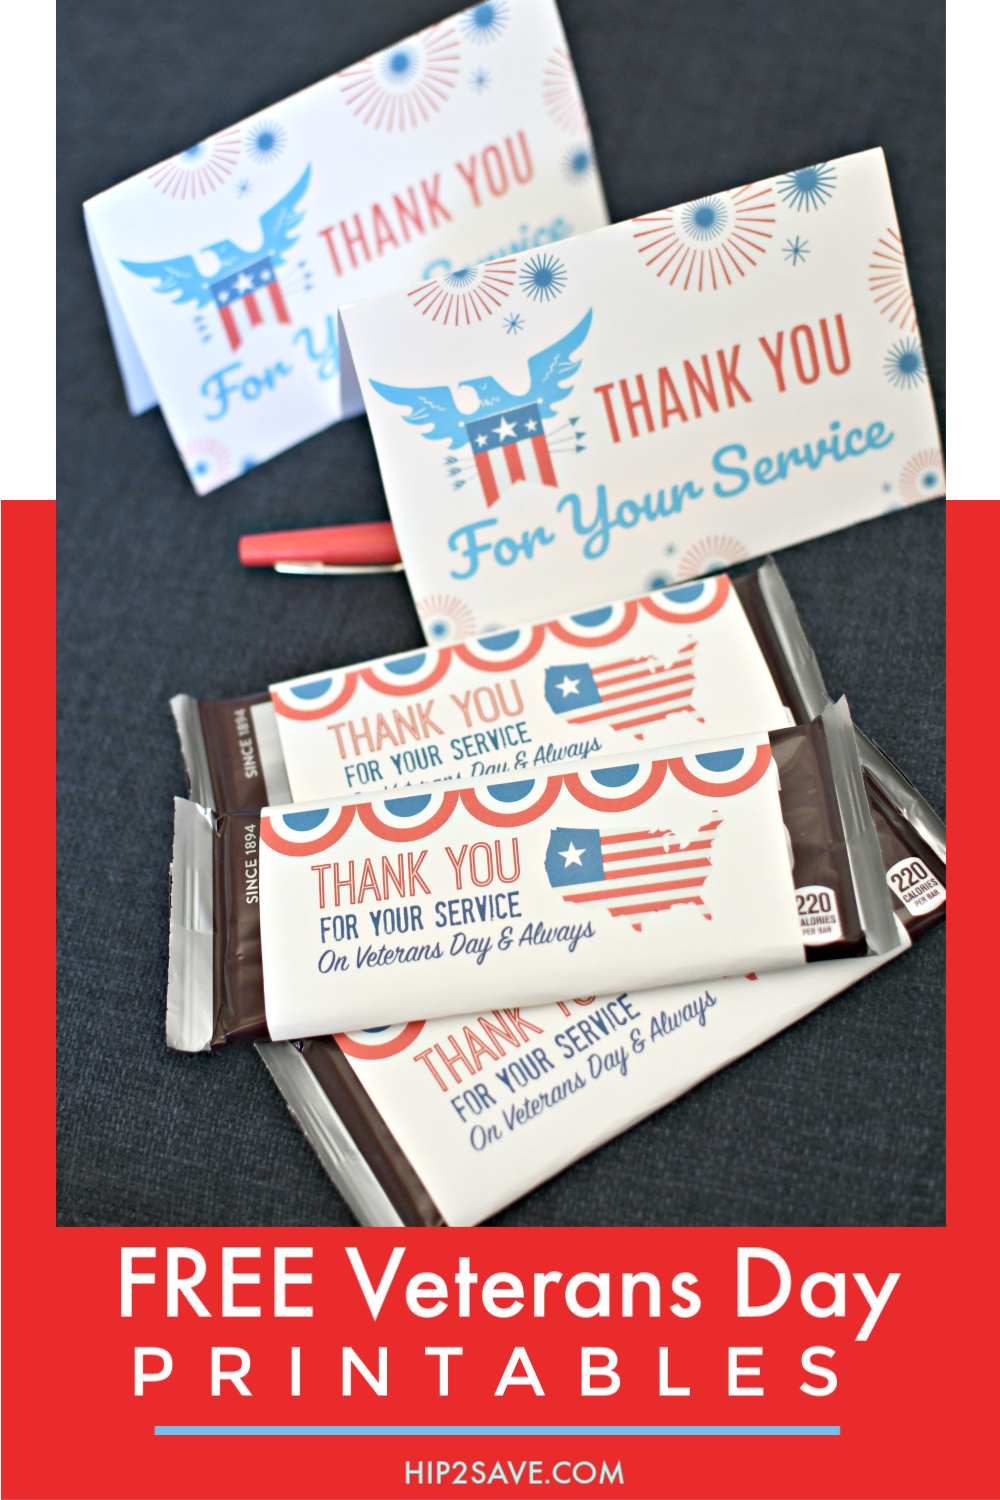 It's just a graphic of Free Printable Veterans Day Cards intended for appreciation